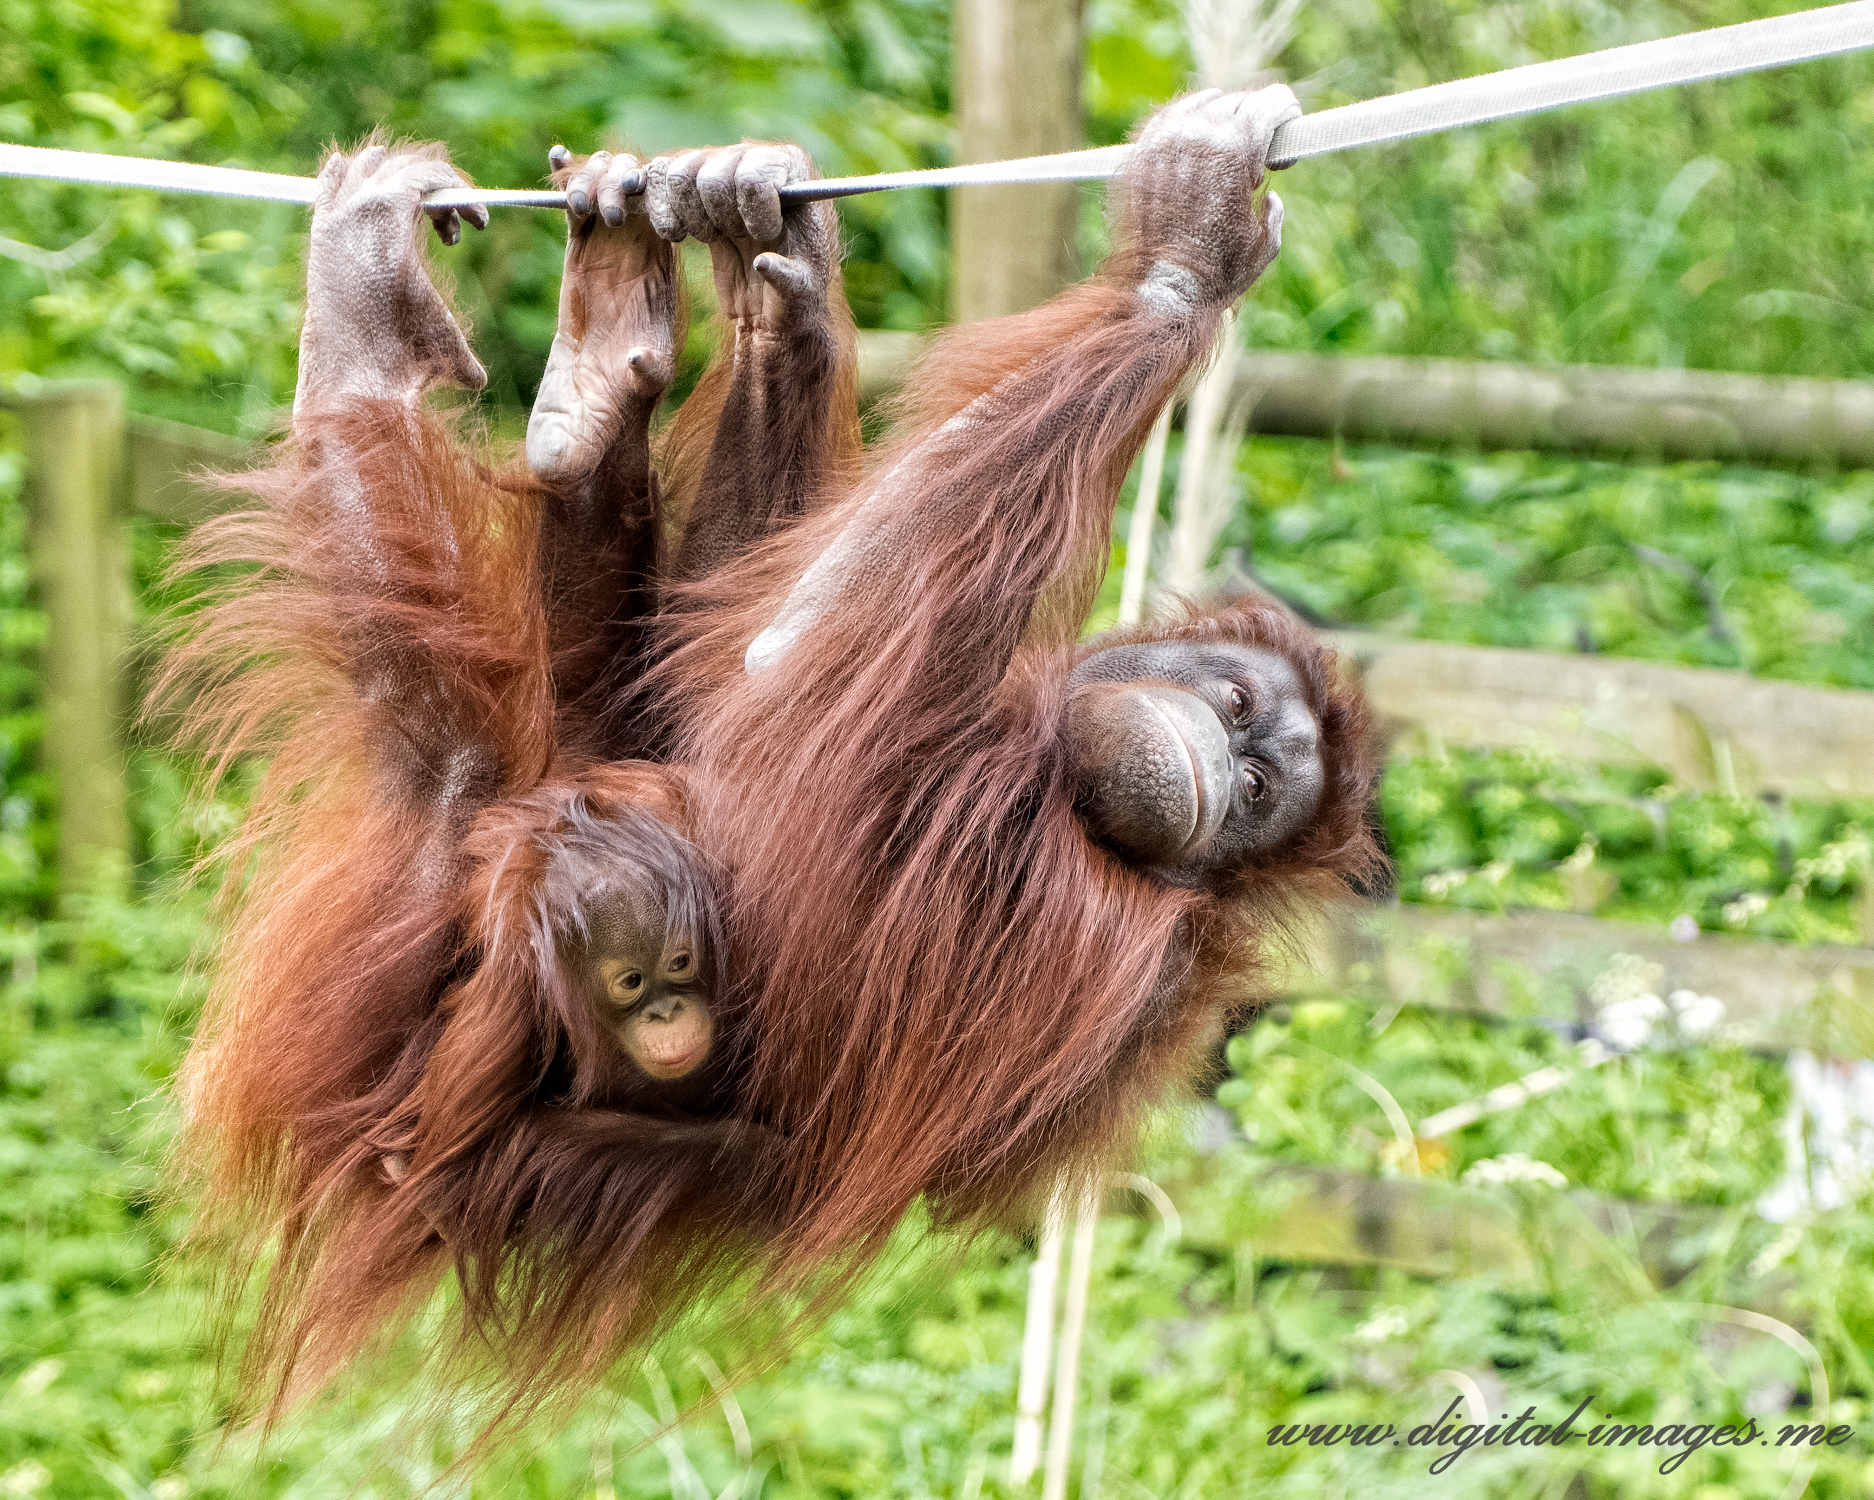 In Second Place, Orangutans at Paignton